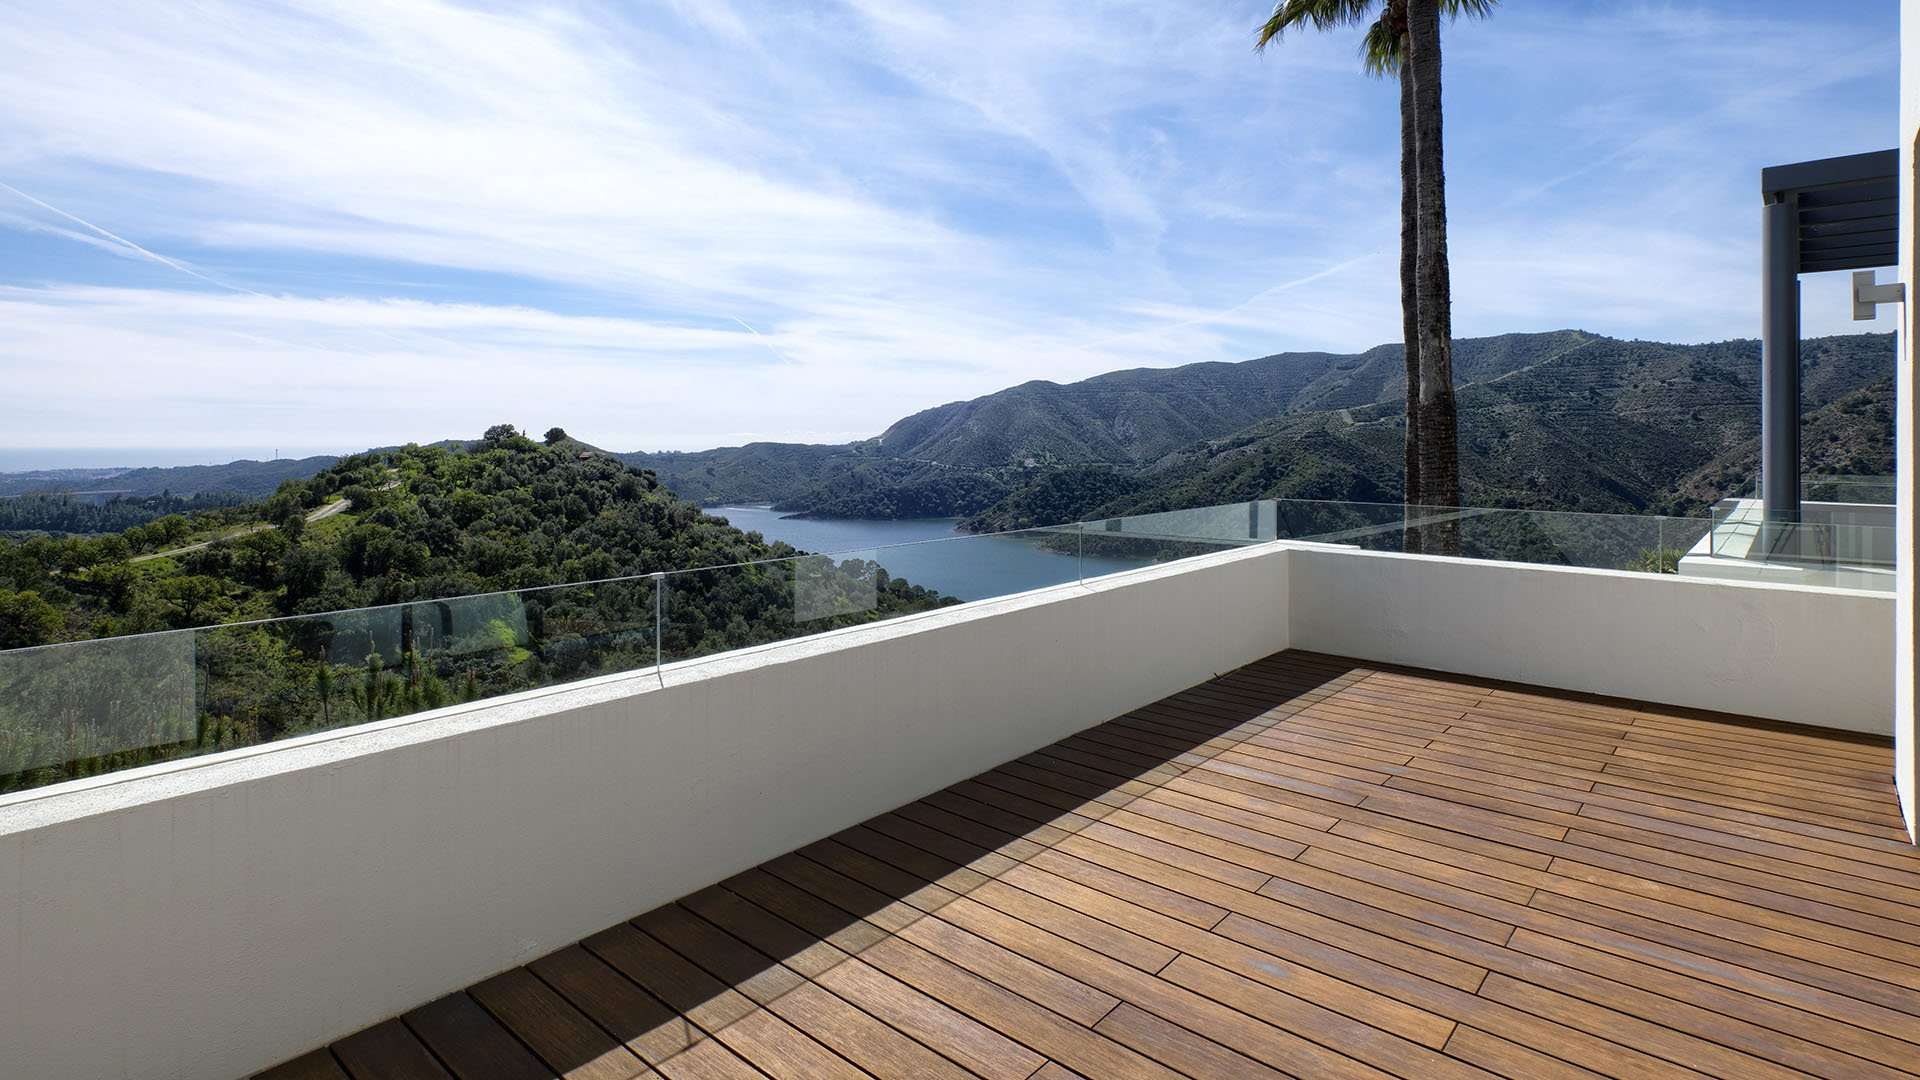 Lakeside Villa Istán: An oasis of tranquillity with impressive views